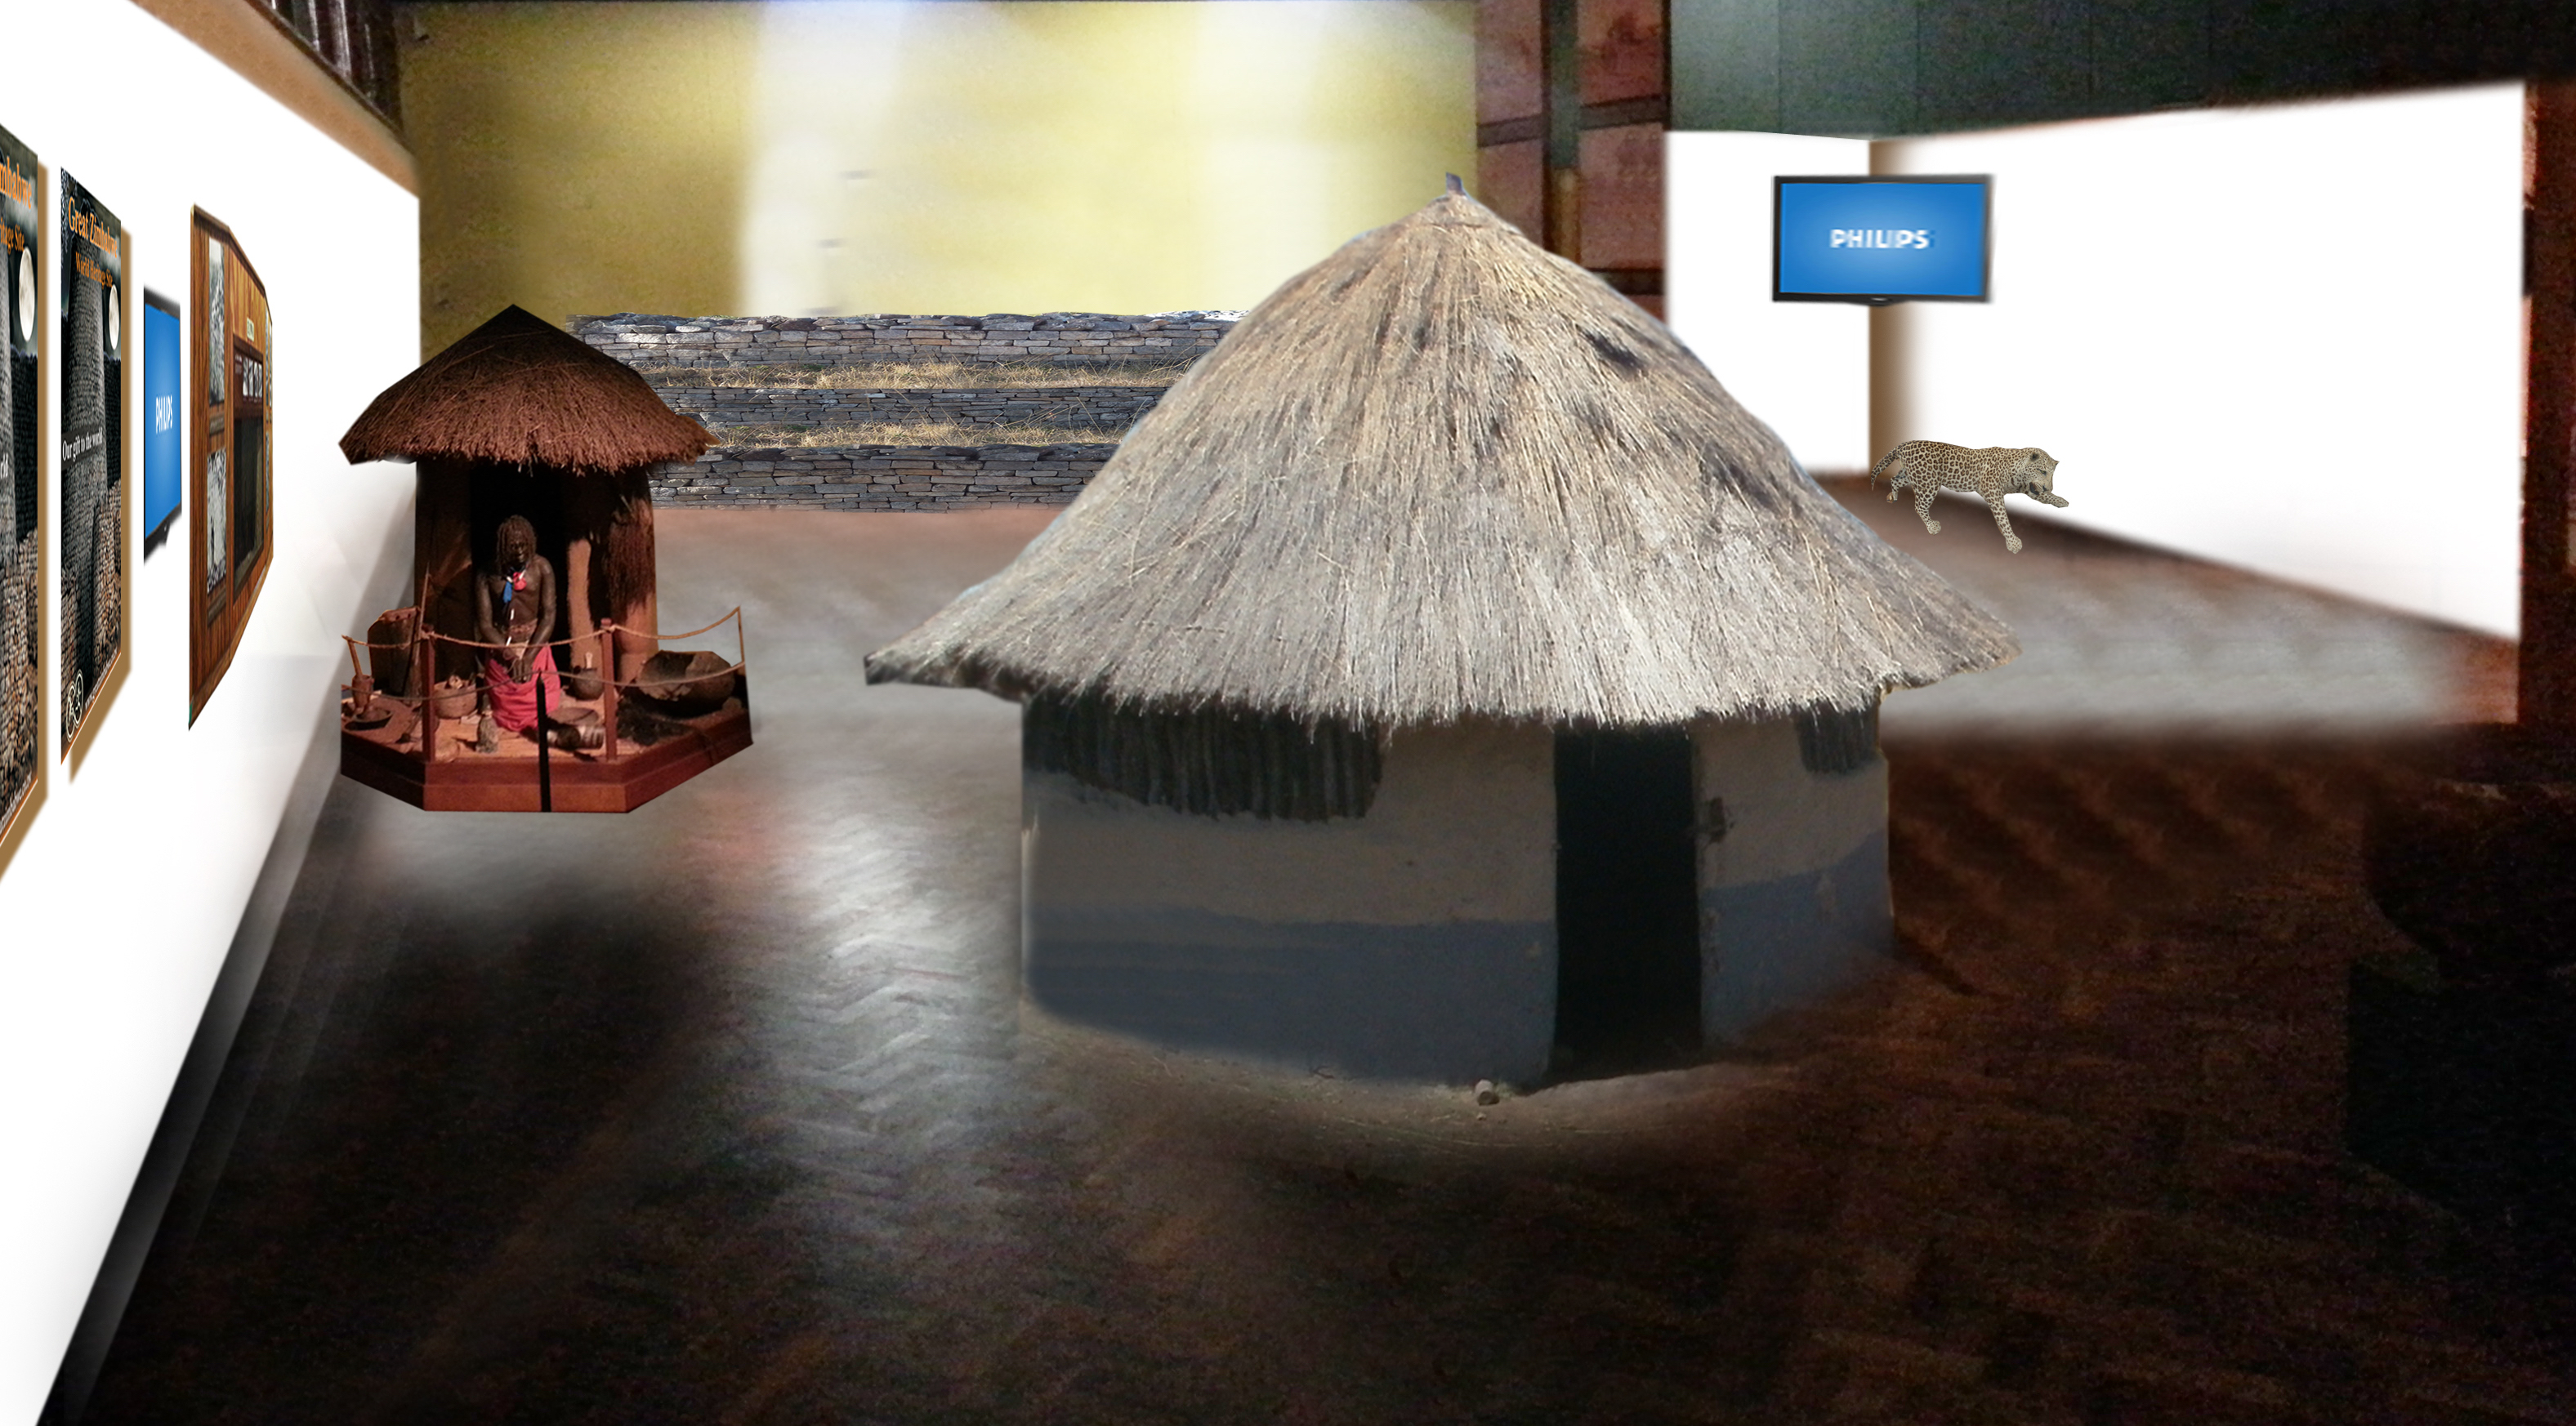 An artistic impression of the proposed interactive nature of the Beit Gallery, graphic designs by Munyaradzi Mashamaire, 6/15/14.